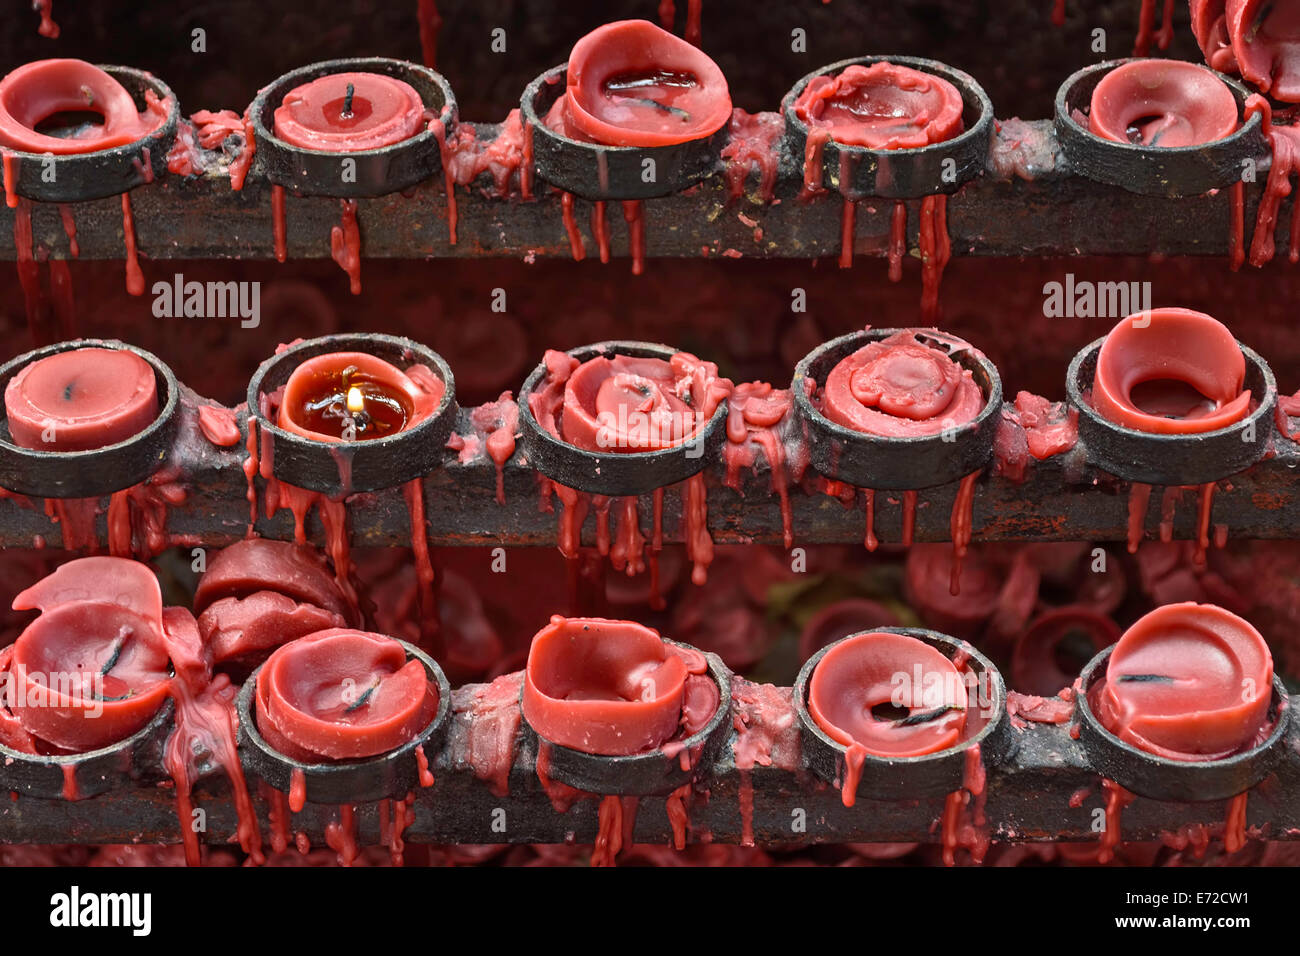 Lit and unlit red little candle offerings of people for their loved ones and prayer requests - Stock Image